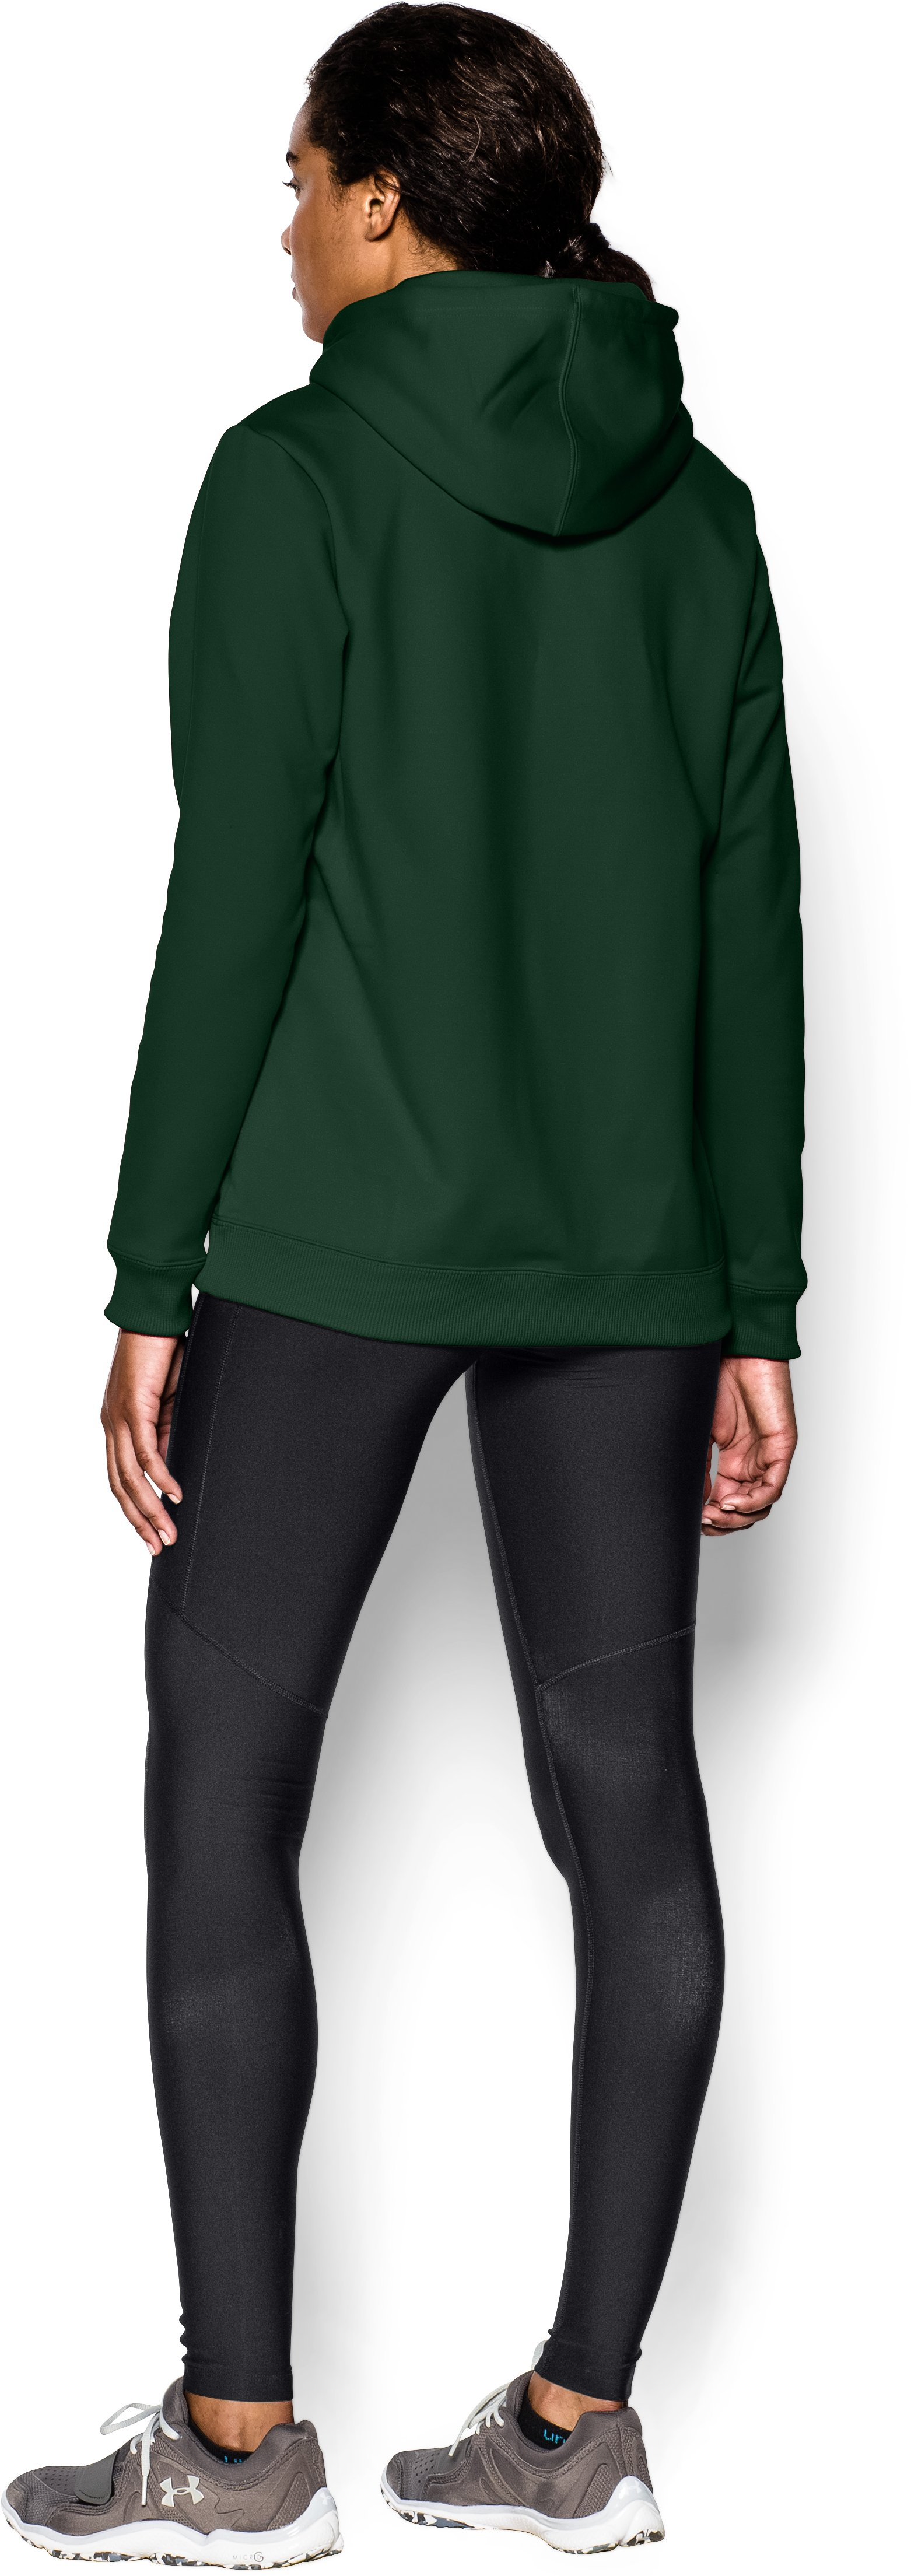 Women's  Armour Fleece® Team Hoodie, Forest Green, Back